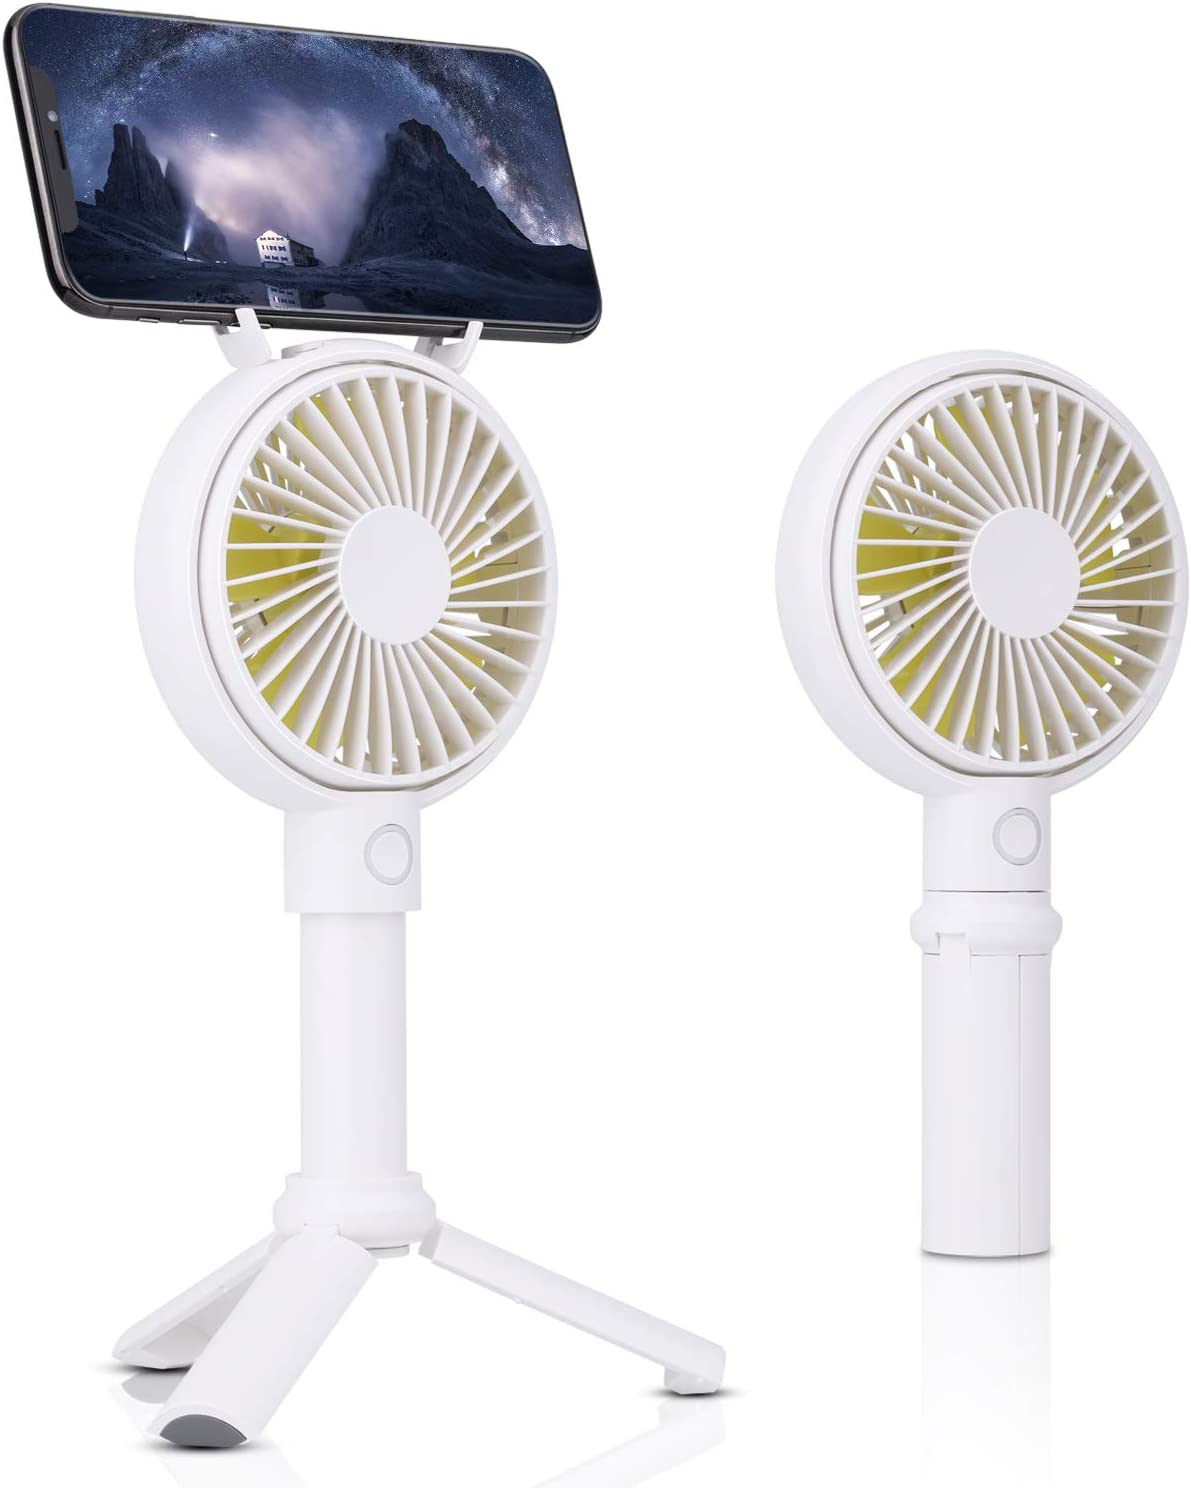 Mini Handheld Fan,XINBAOHONG Personal Portable Desktop Stroller Fan with USB Rechargeable Battery Operated Cooling Folding Electric Fan for Office Room Outdoor Household Traveling (White)